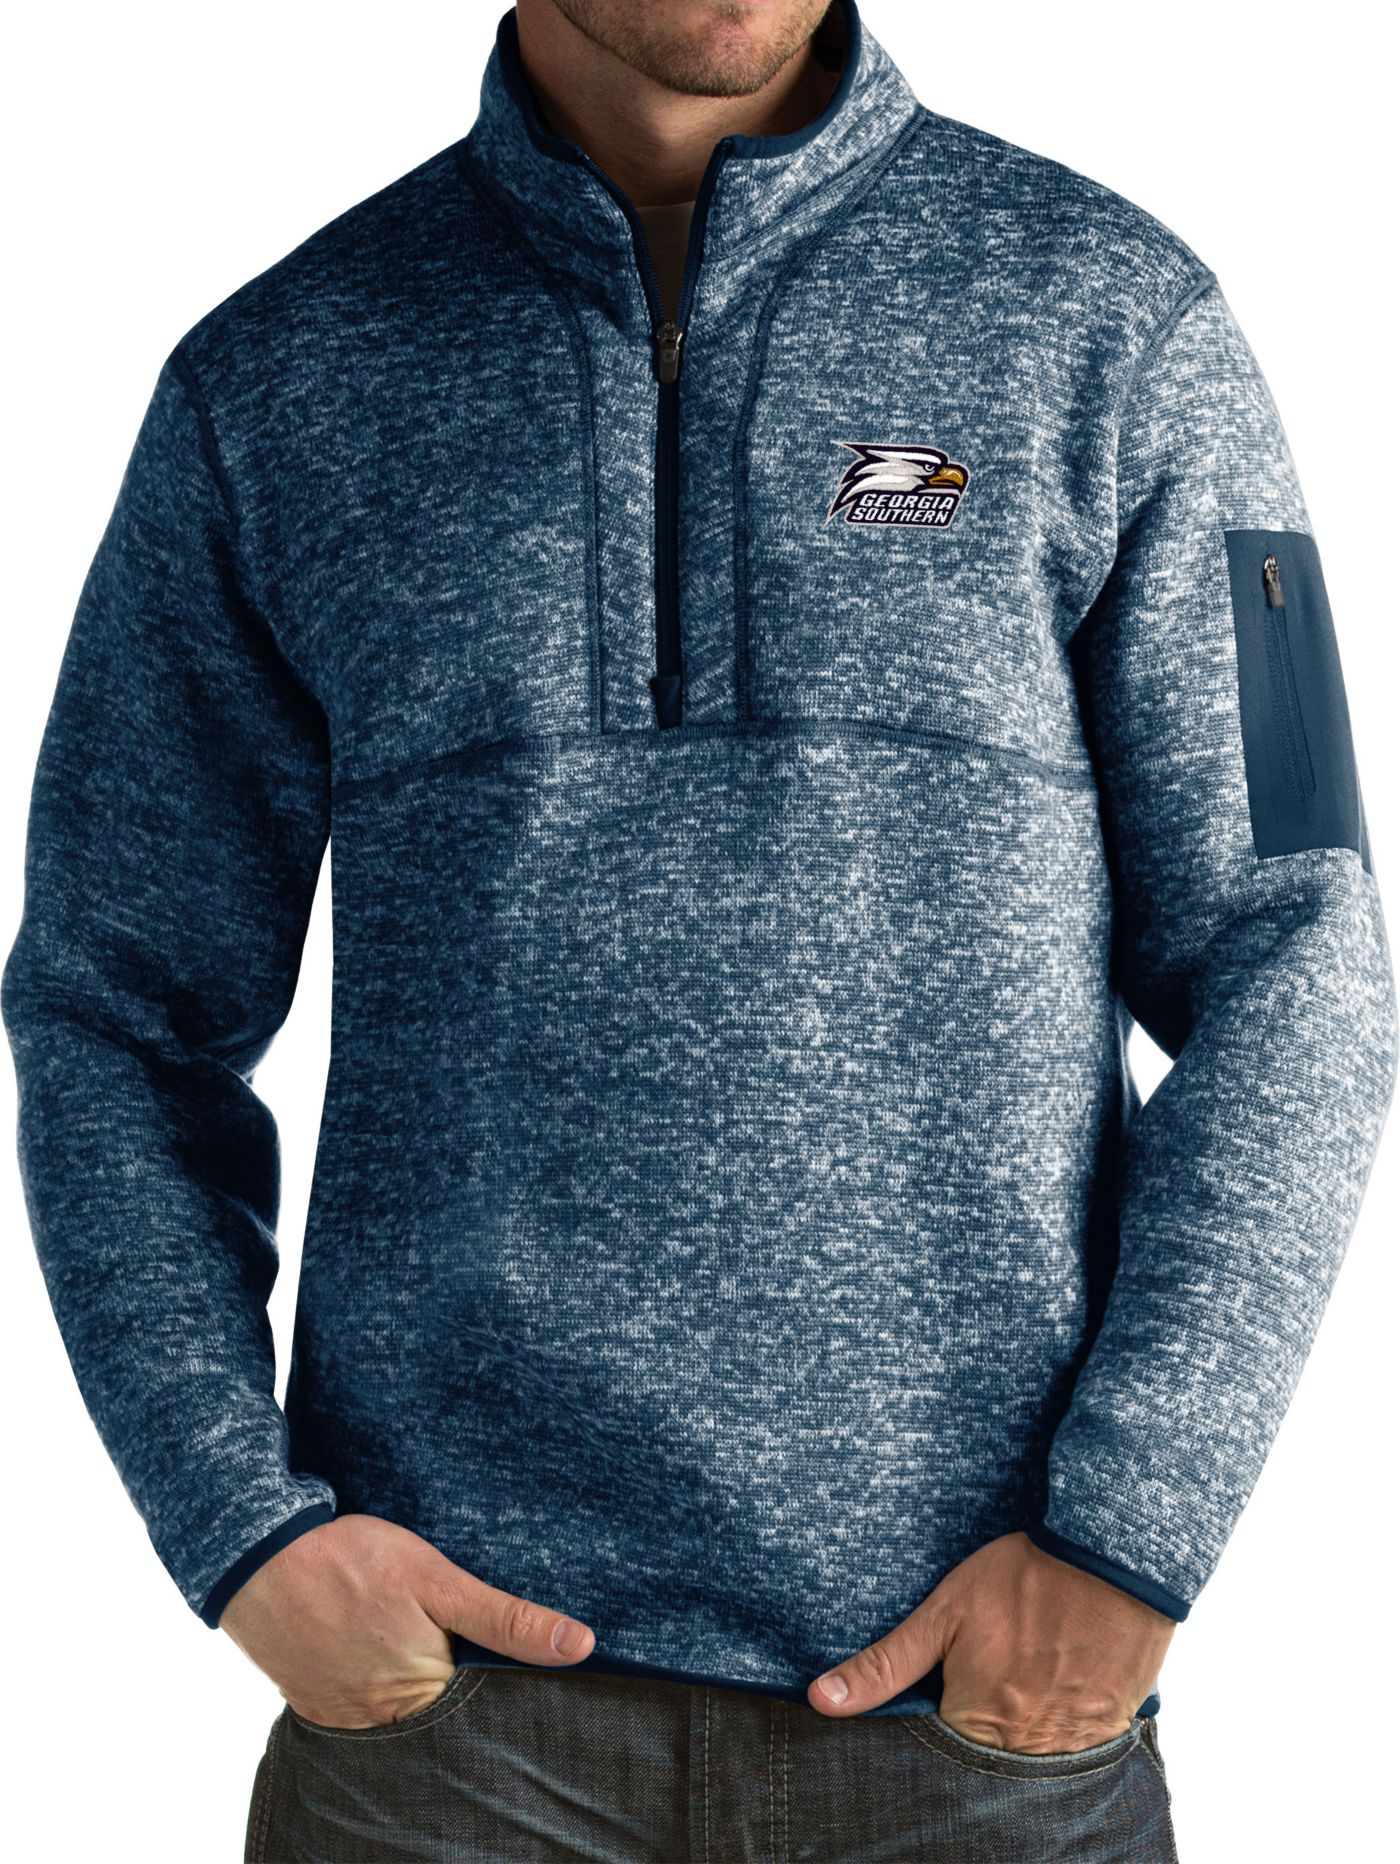 Antigua Men's Georgia Southern Eagles Navy Fortune Pullover Jacket